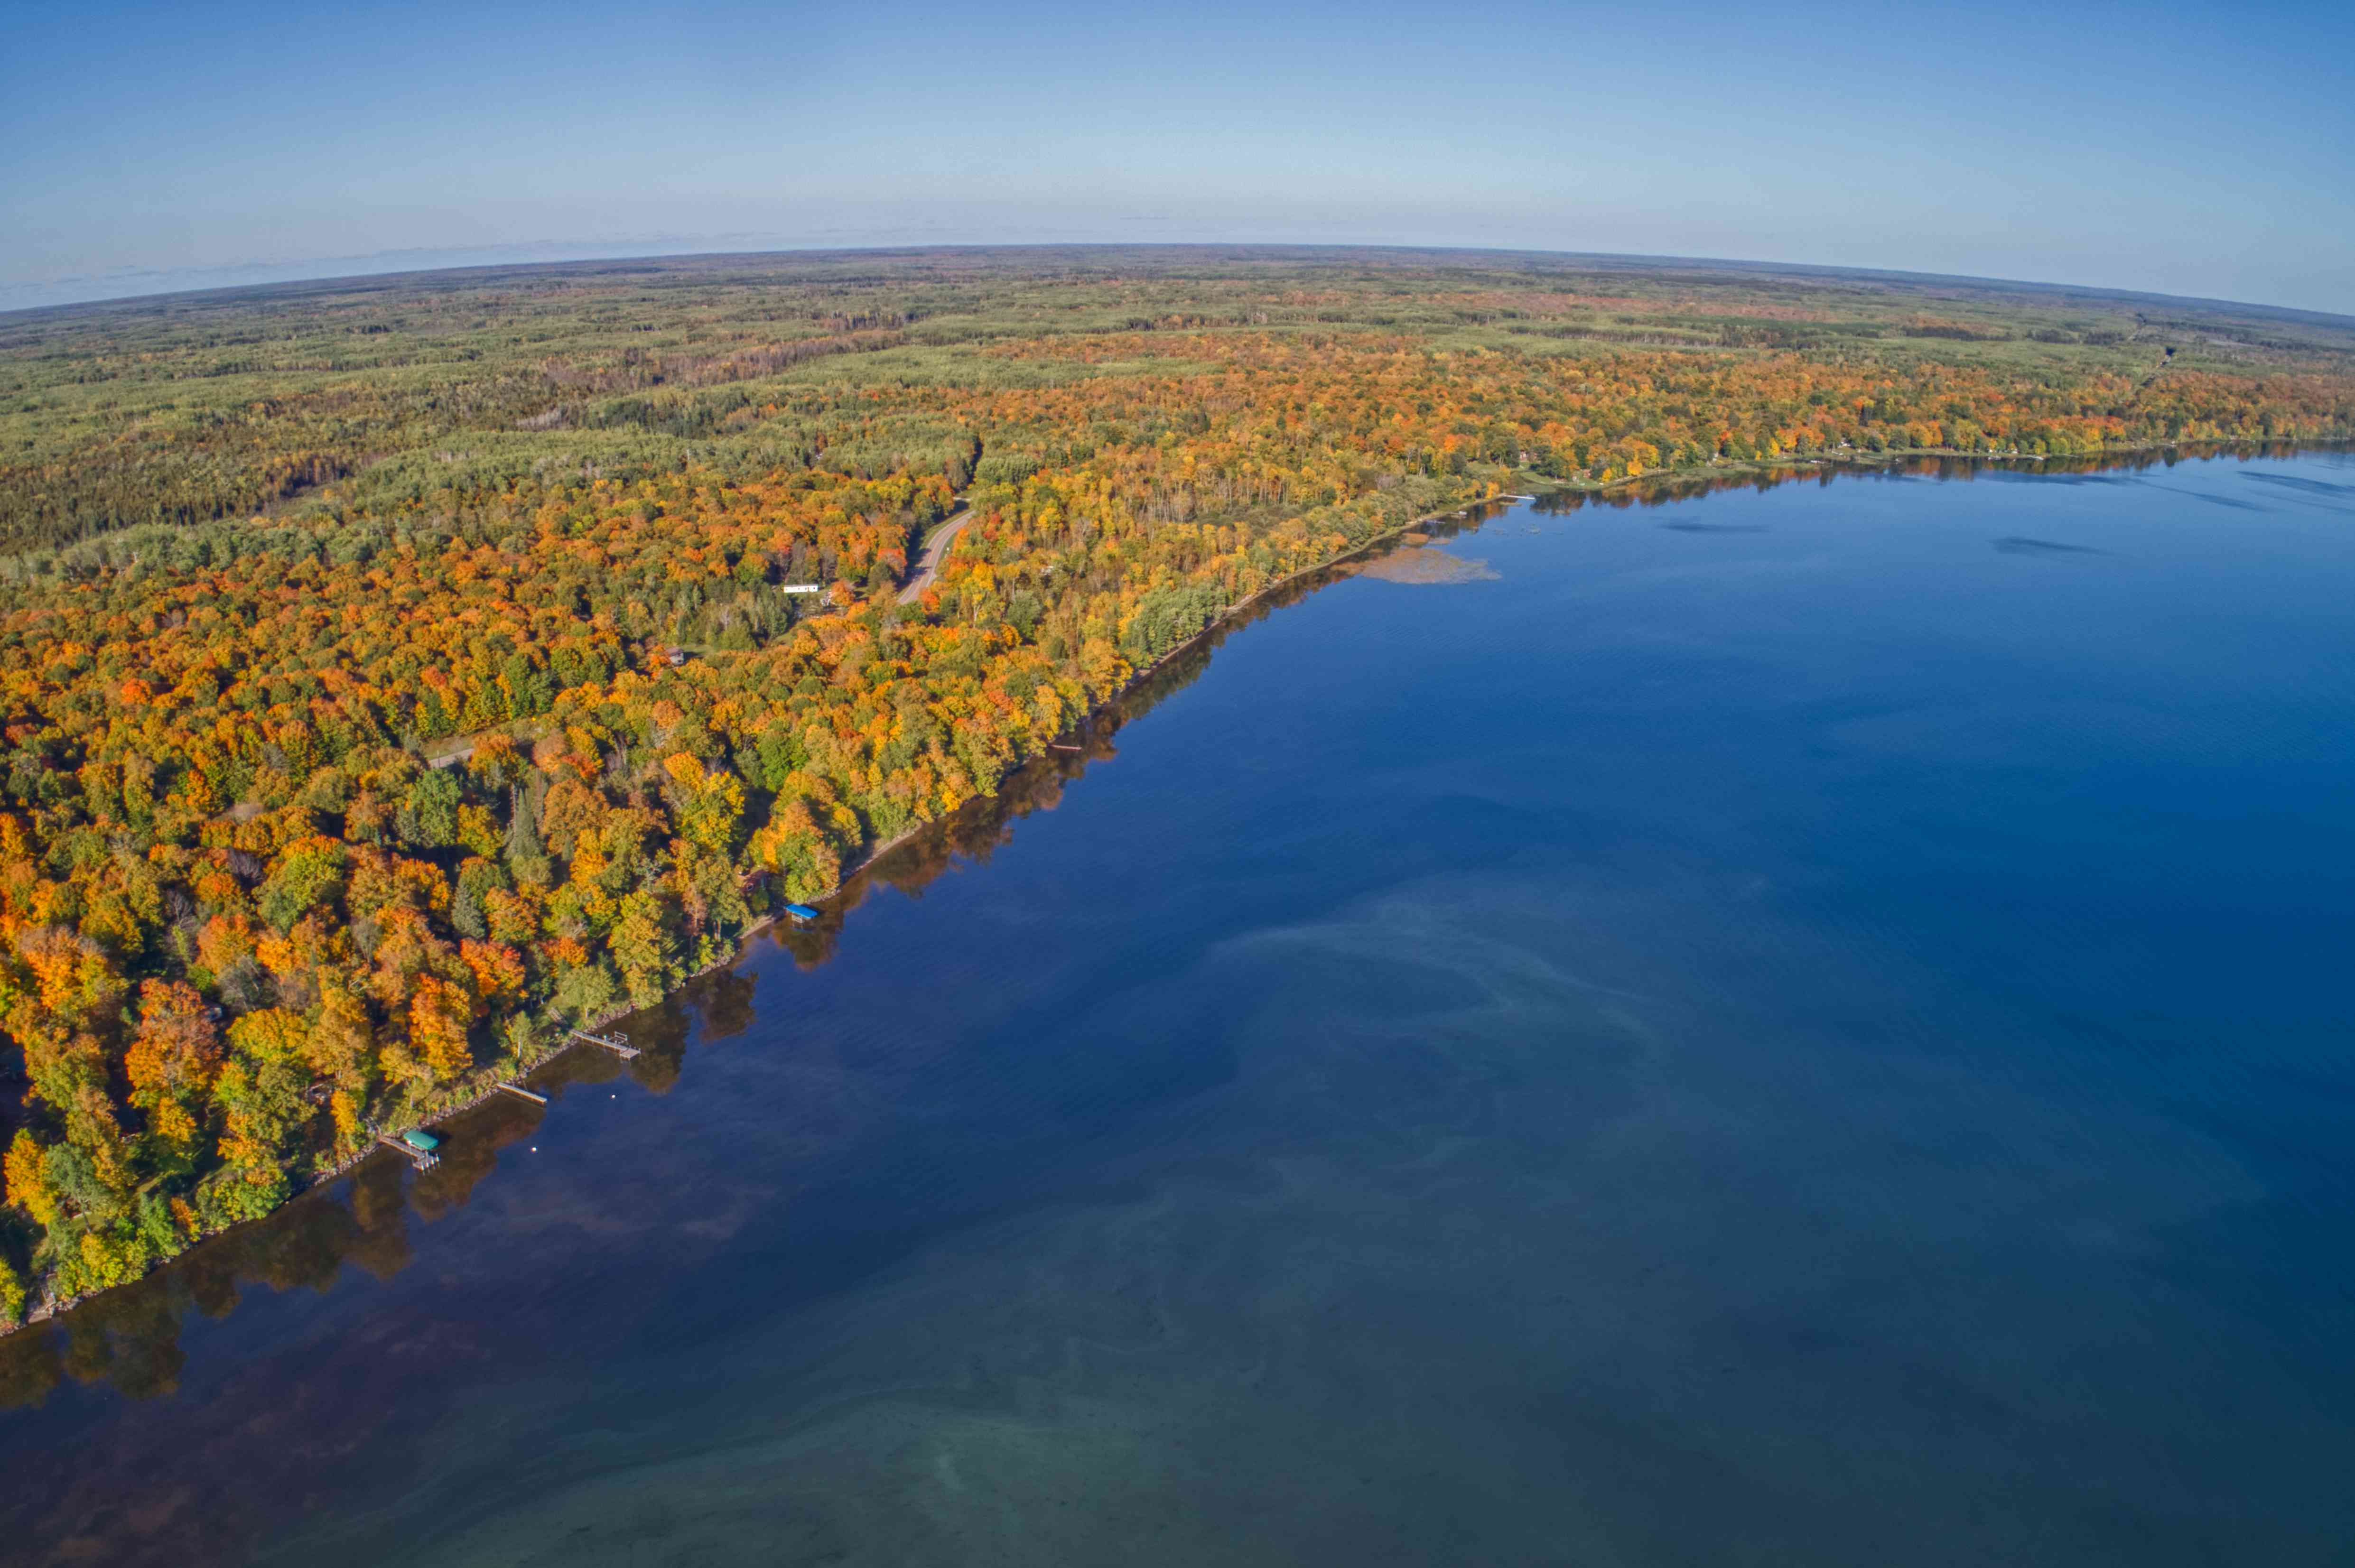 Aerial Viewe of a northern Minnesota Lake in autumn